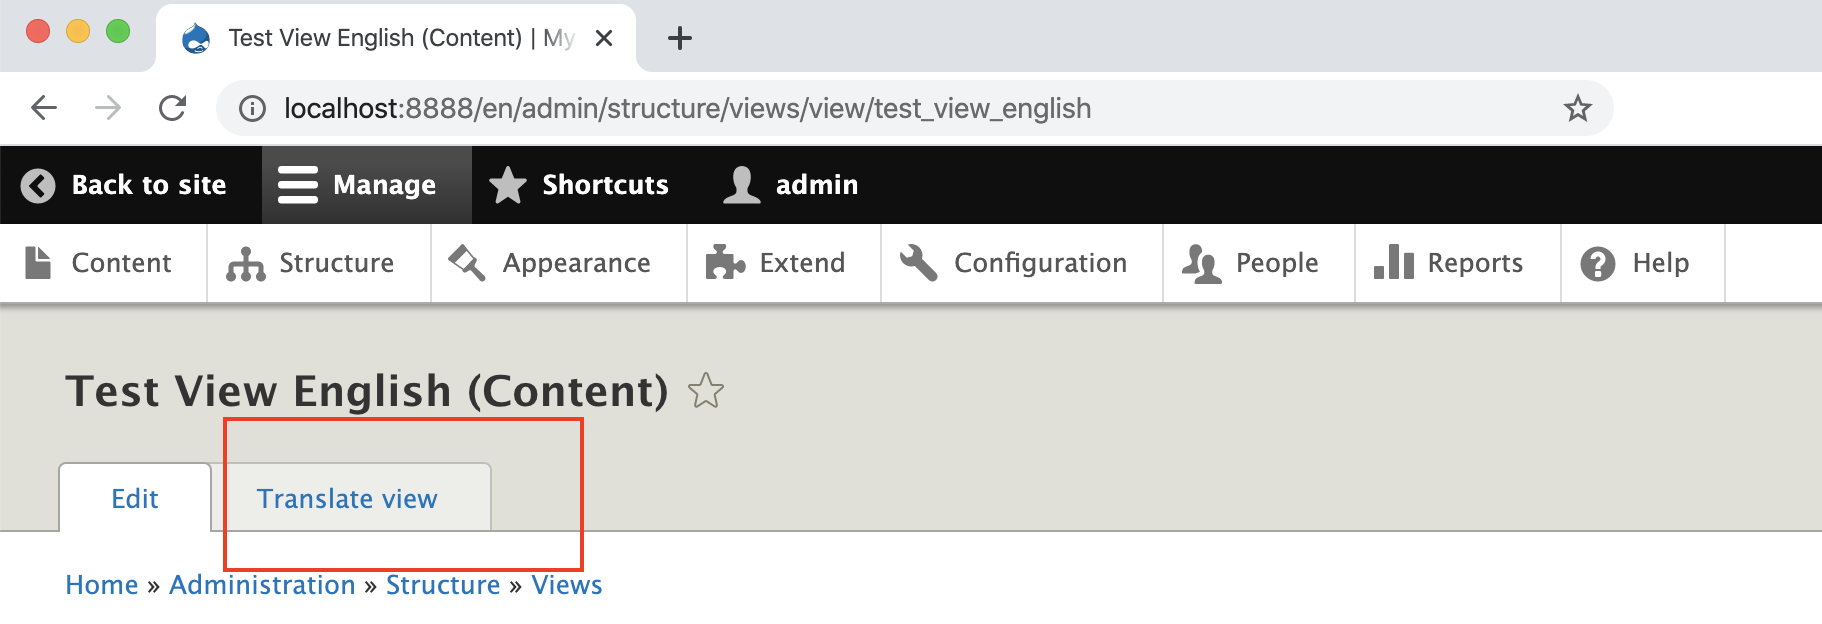 screenshot of backend for test view english content